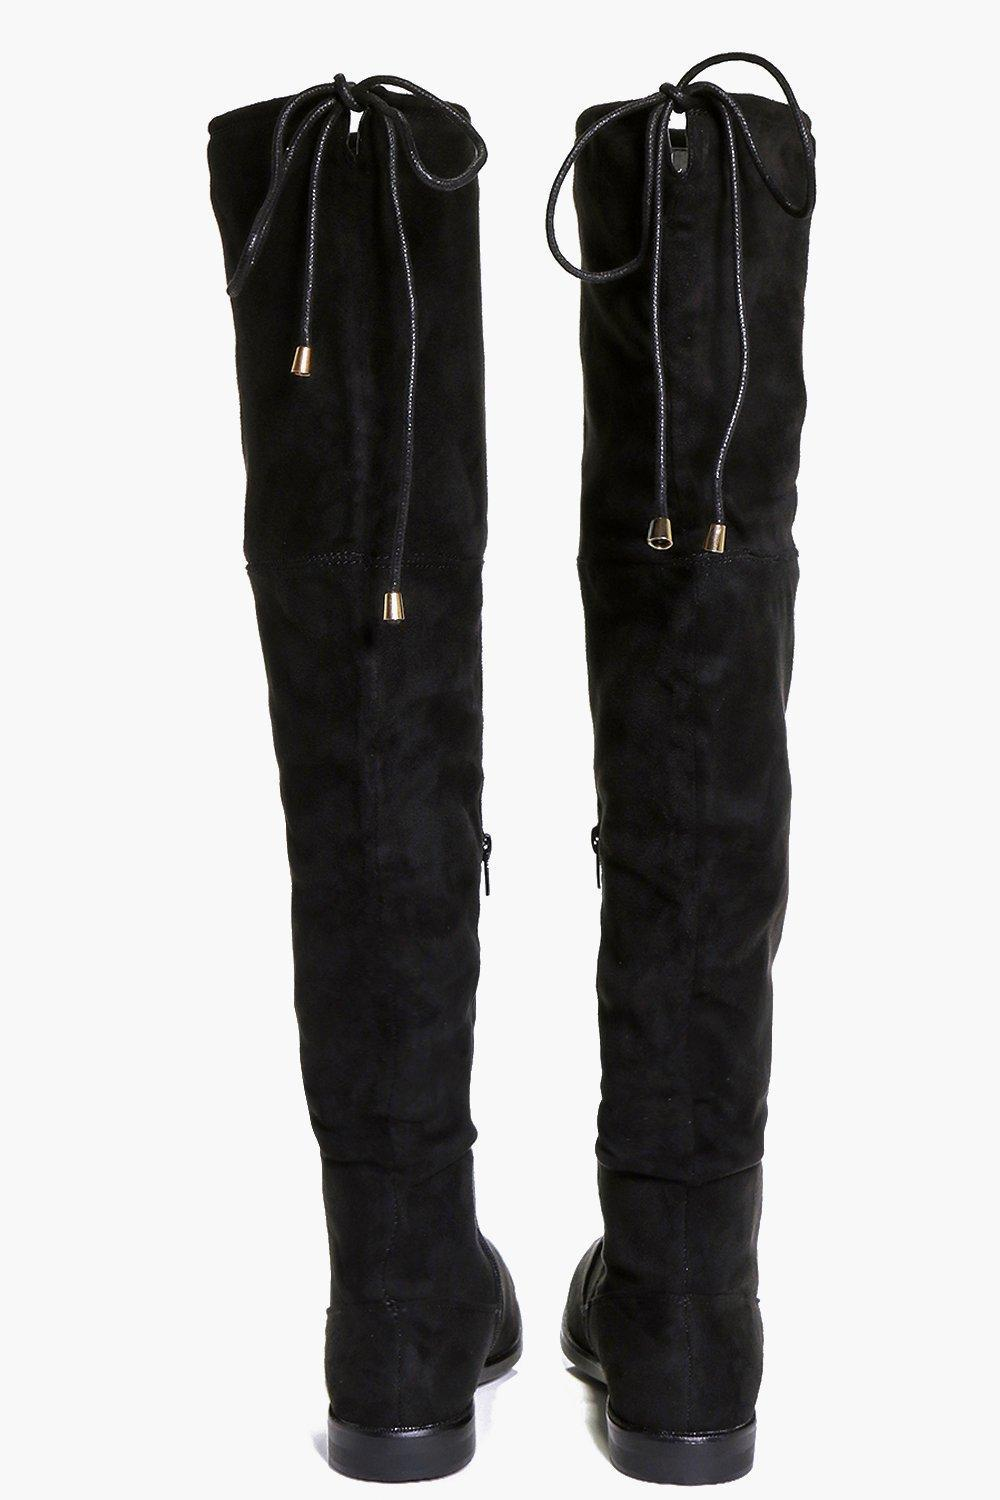 Boohoo Synthetic Tie Back Flat Over The Knee Boots in Black